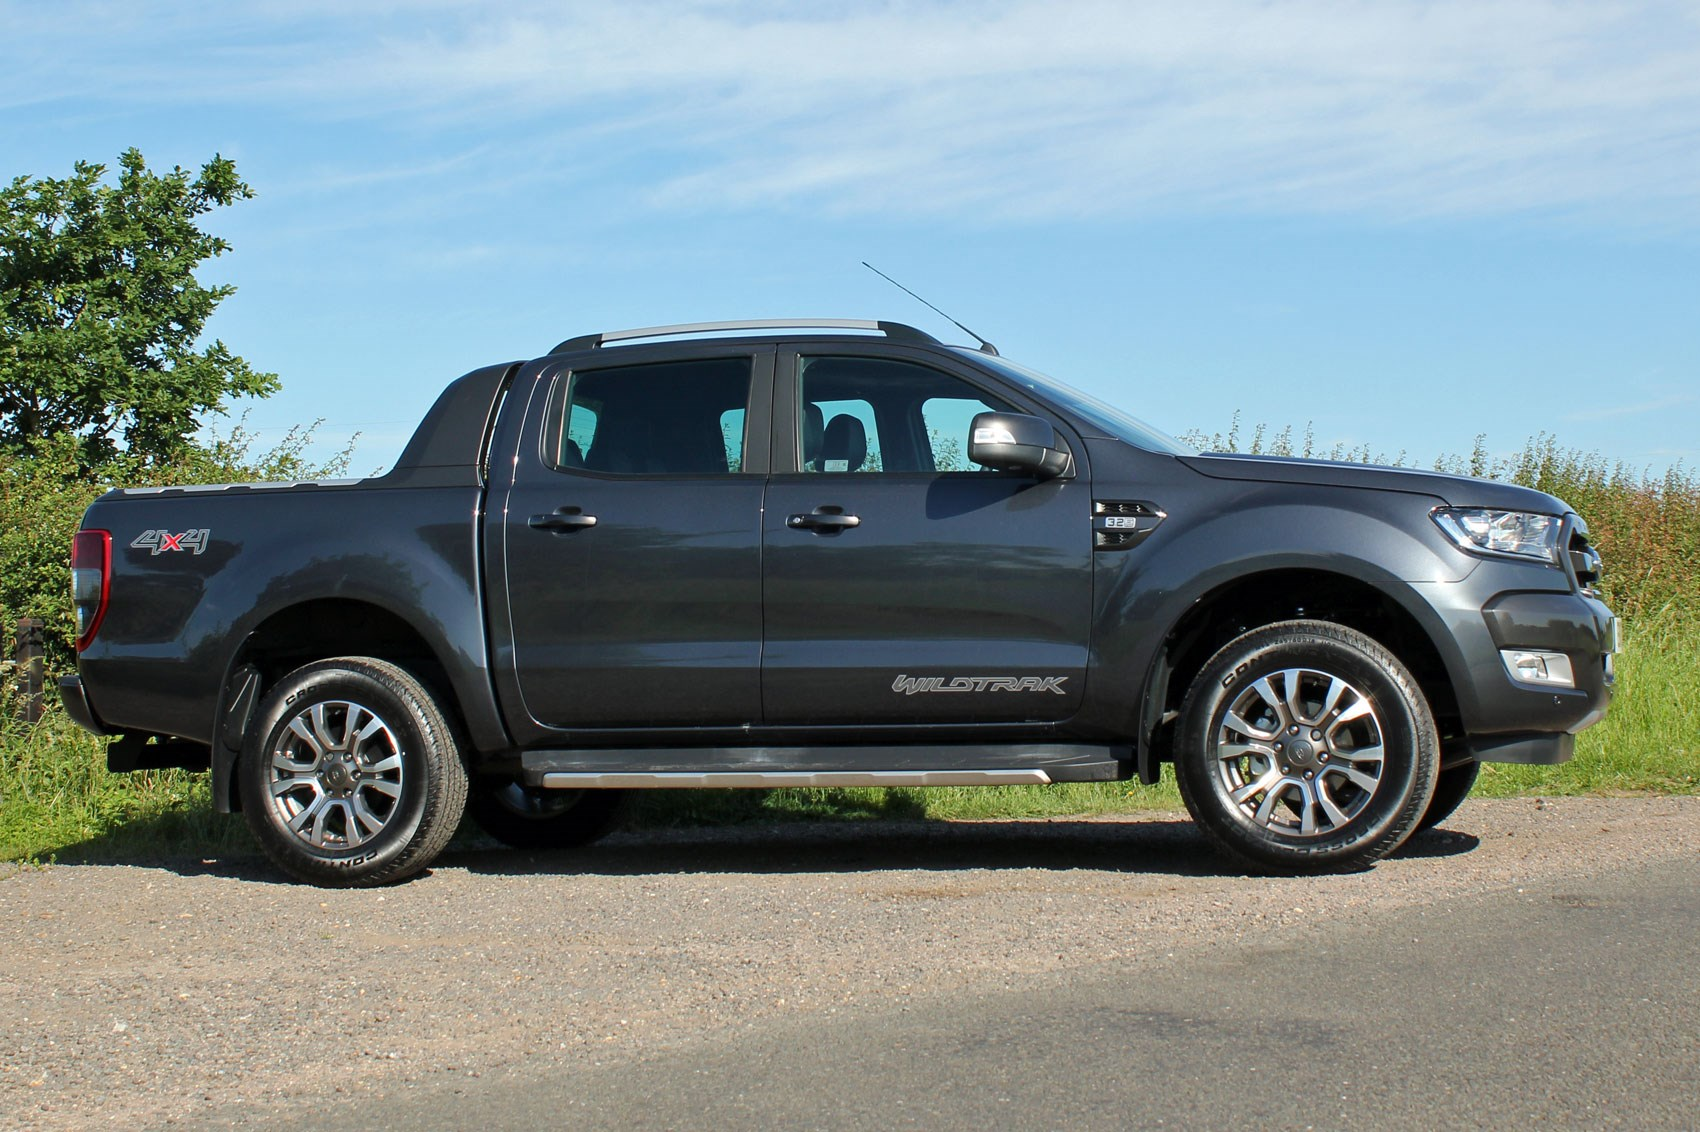 Ford Ranger Wildtrak Euro 6 review - dark grey, side view